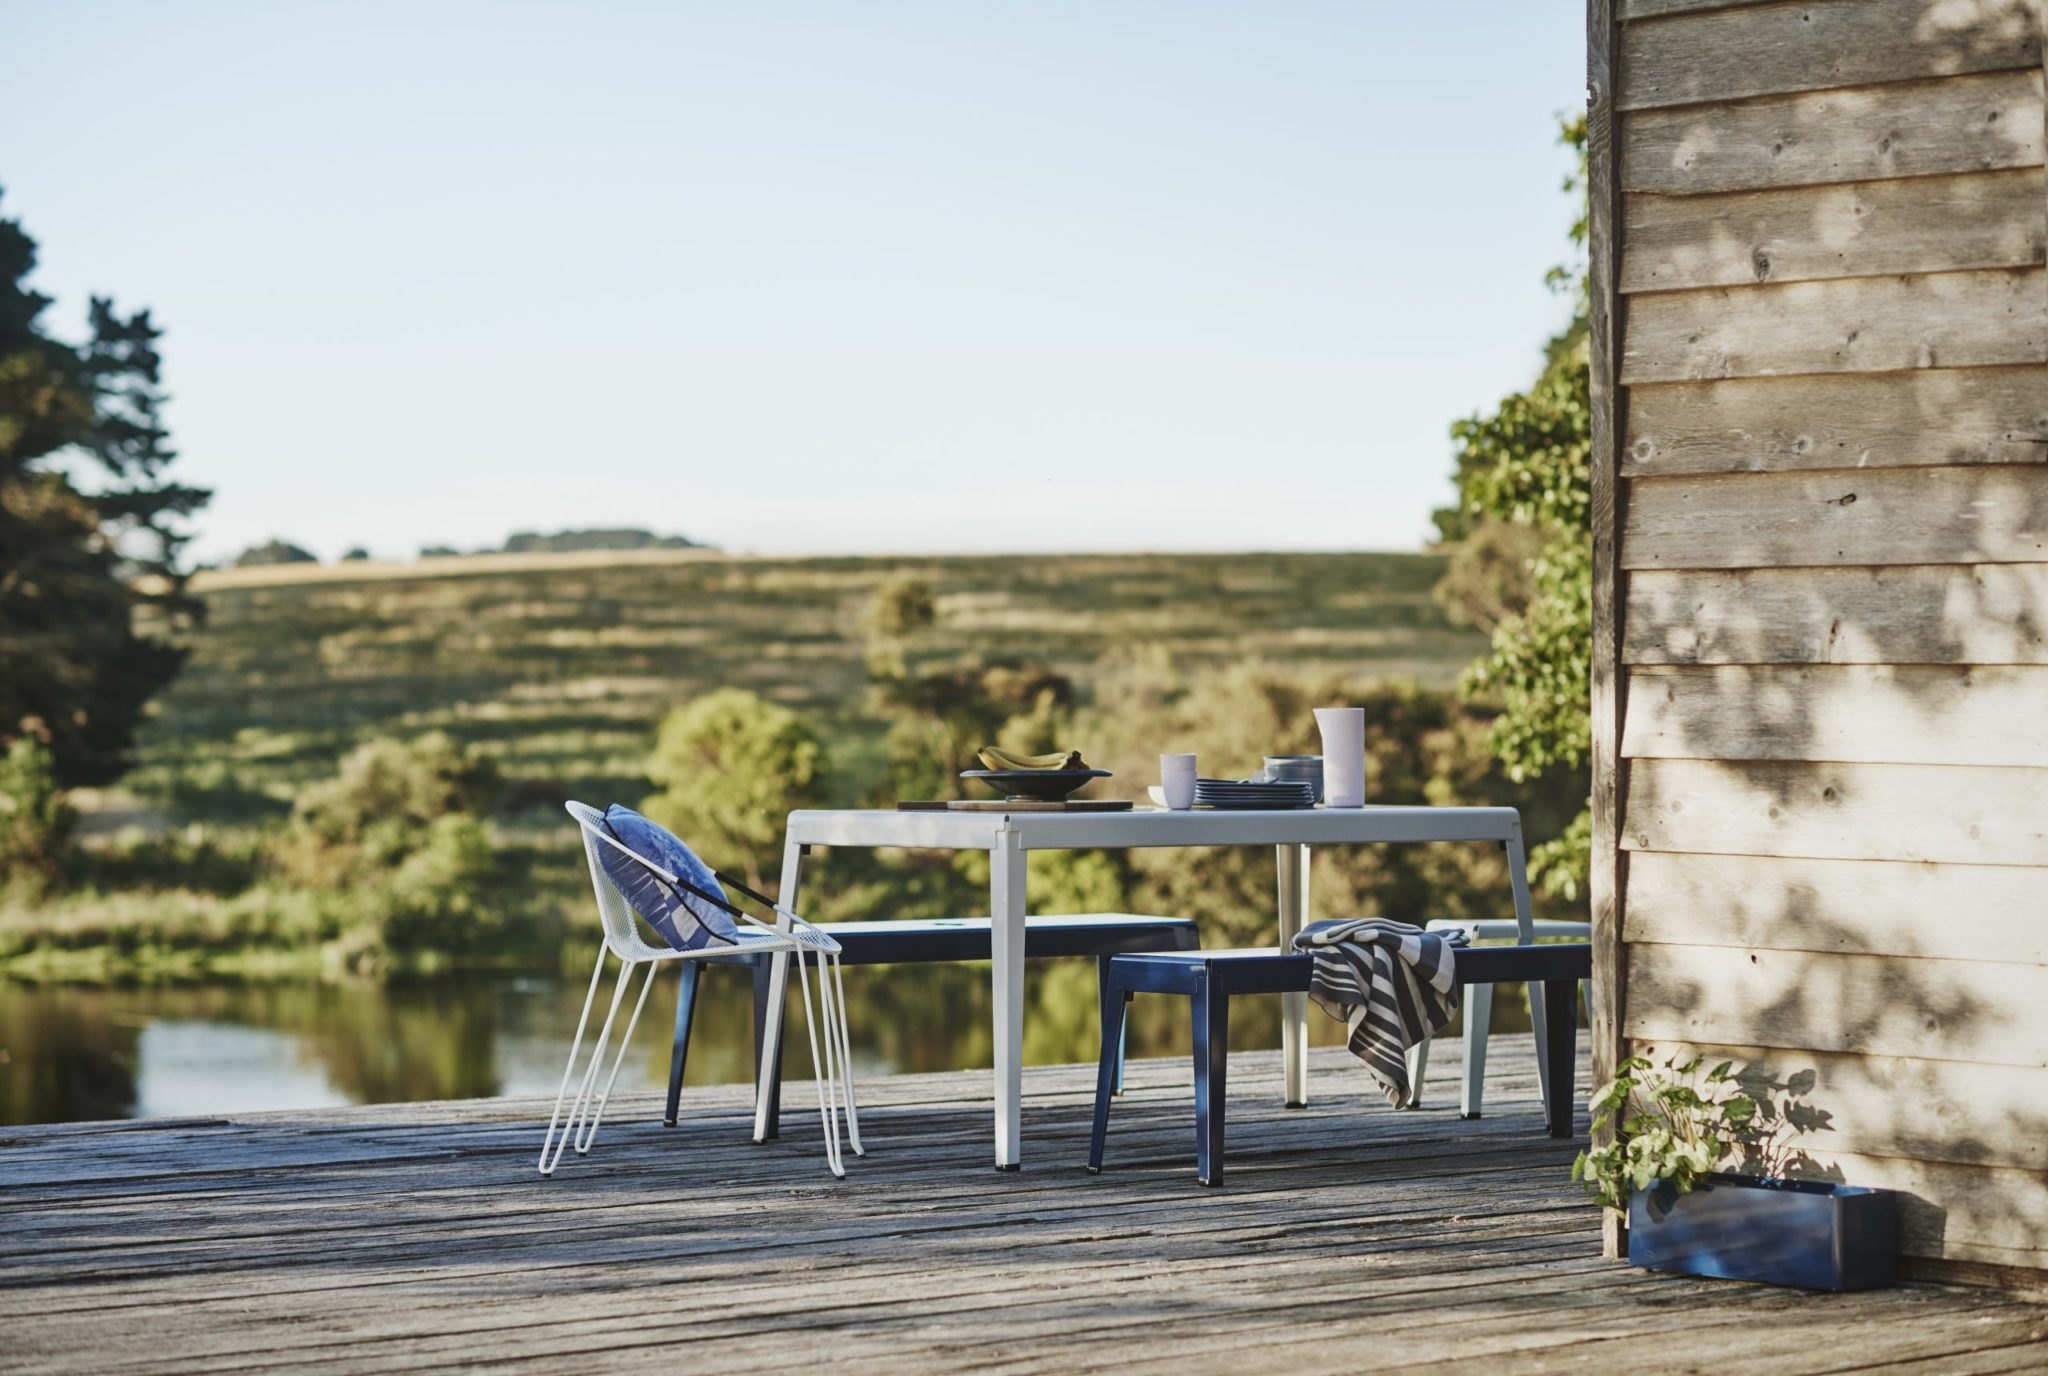 The Good One Table is an industrial style outdoor table prized for its industrial aesthetic and durability within outdoor contexts.